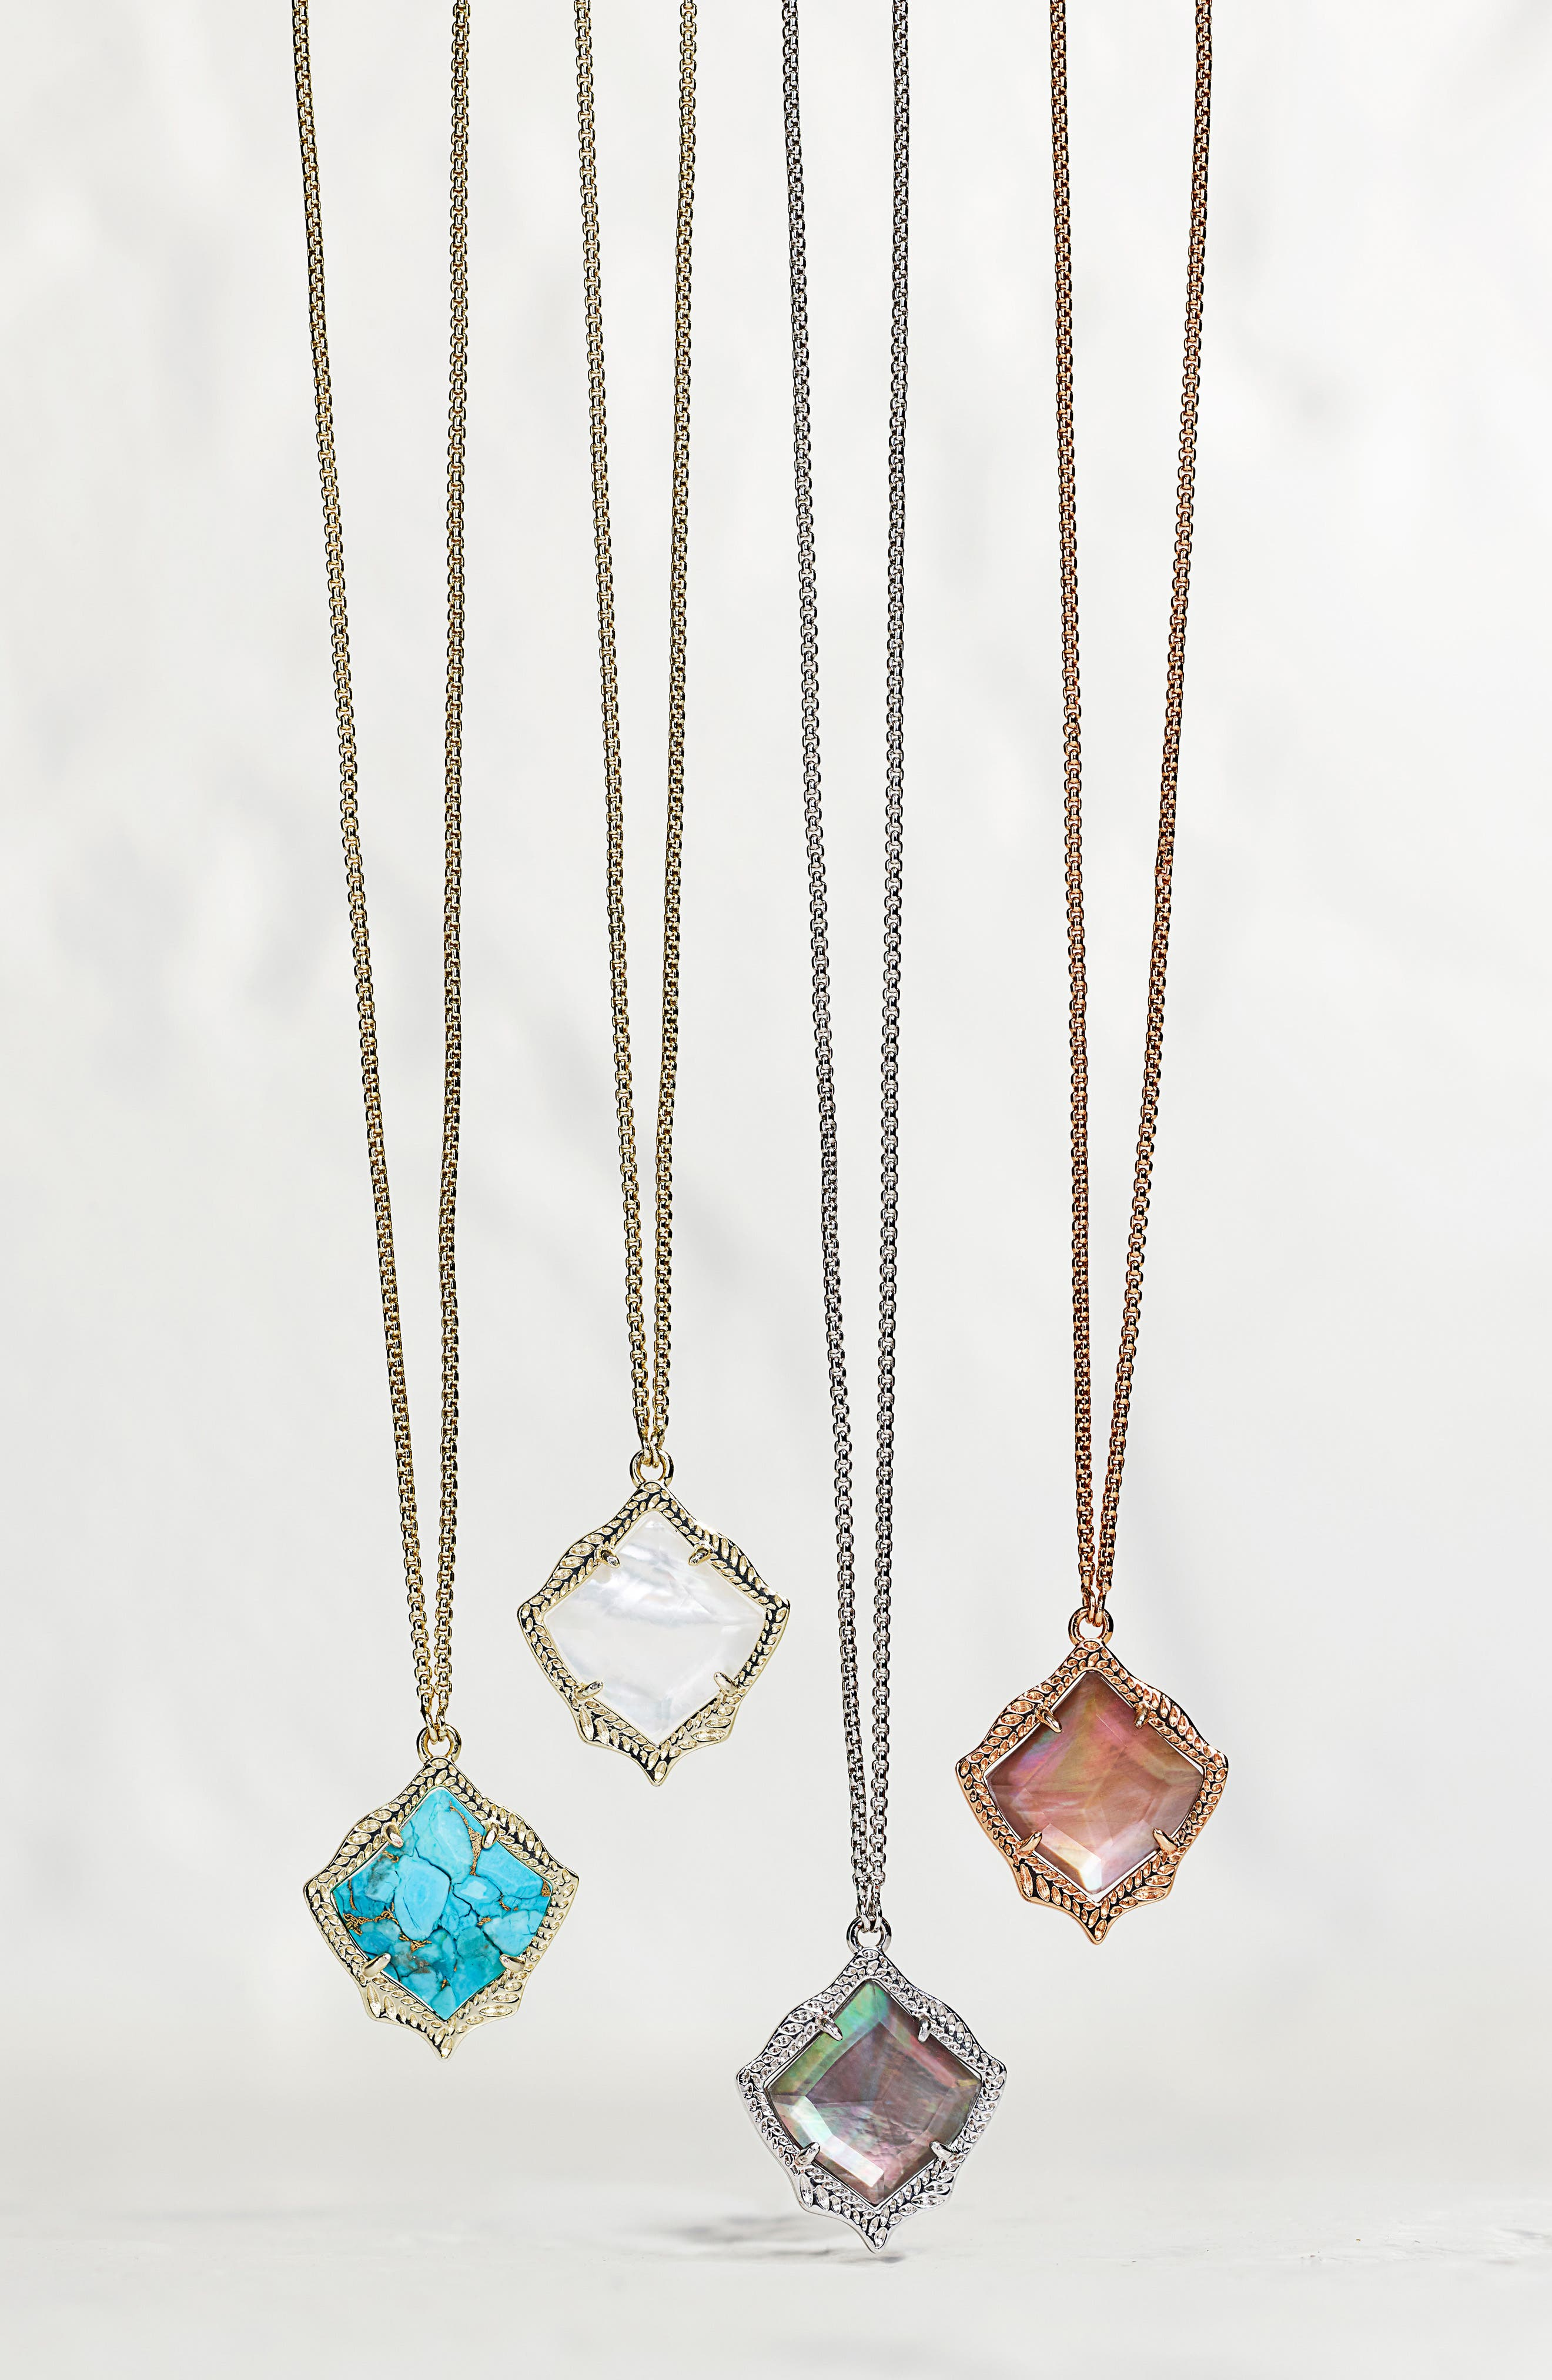 KENDRA SCOTT, Kacey Pendant Necklace, Alternate thumbnail 3, color, TURQUOISE MAGNESITE/ GOLD